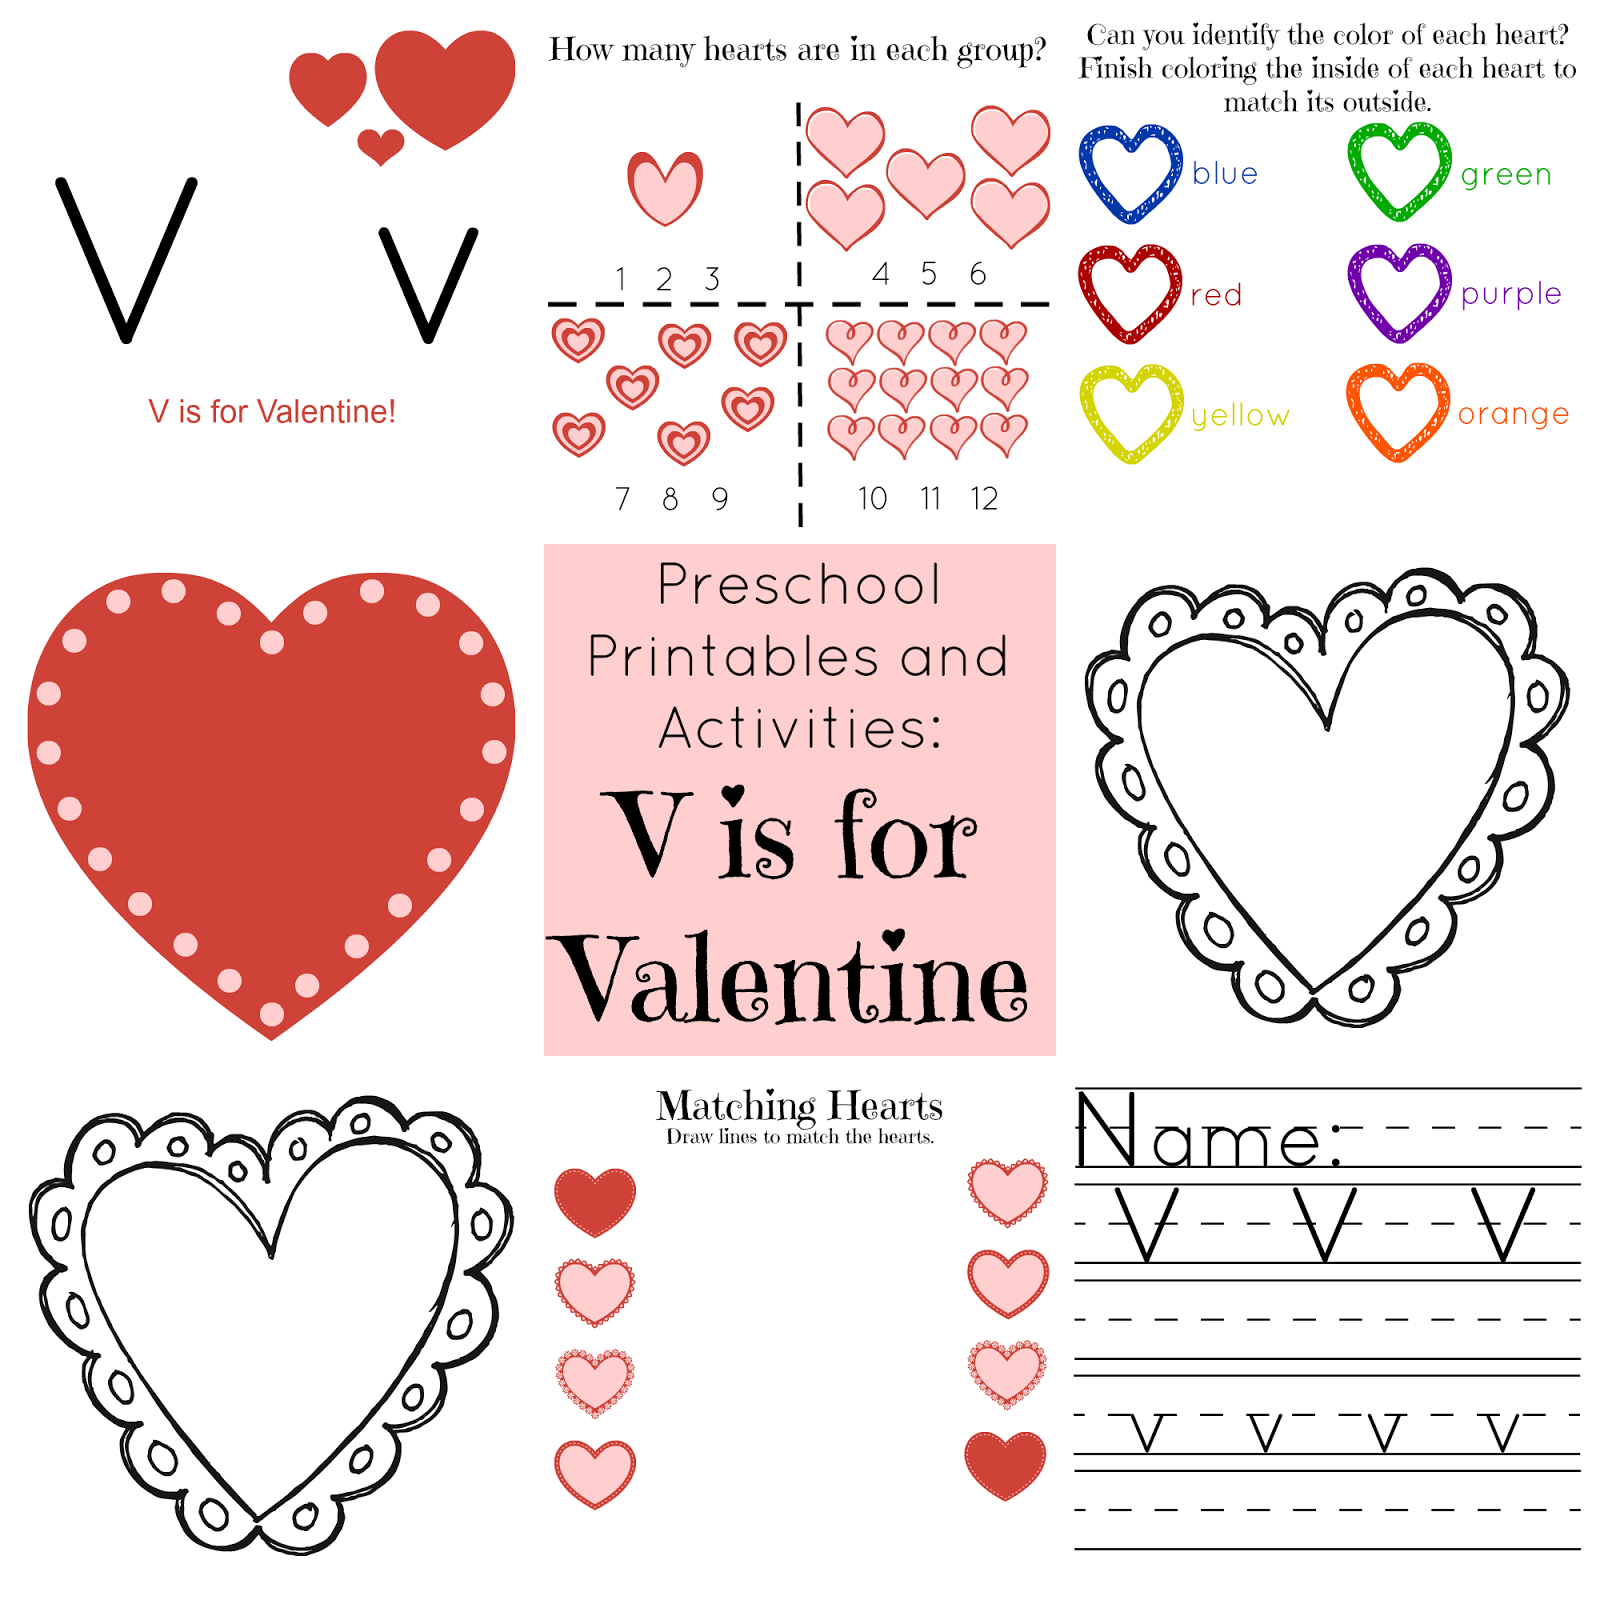 The Life Of Jennifer Dawn V Is For Valentine Preschool Printables And Activities